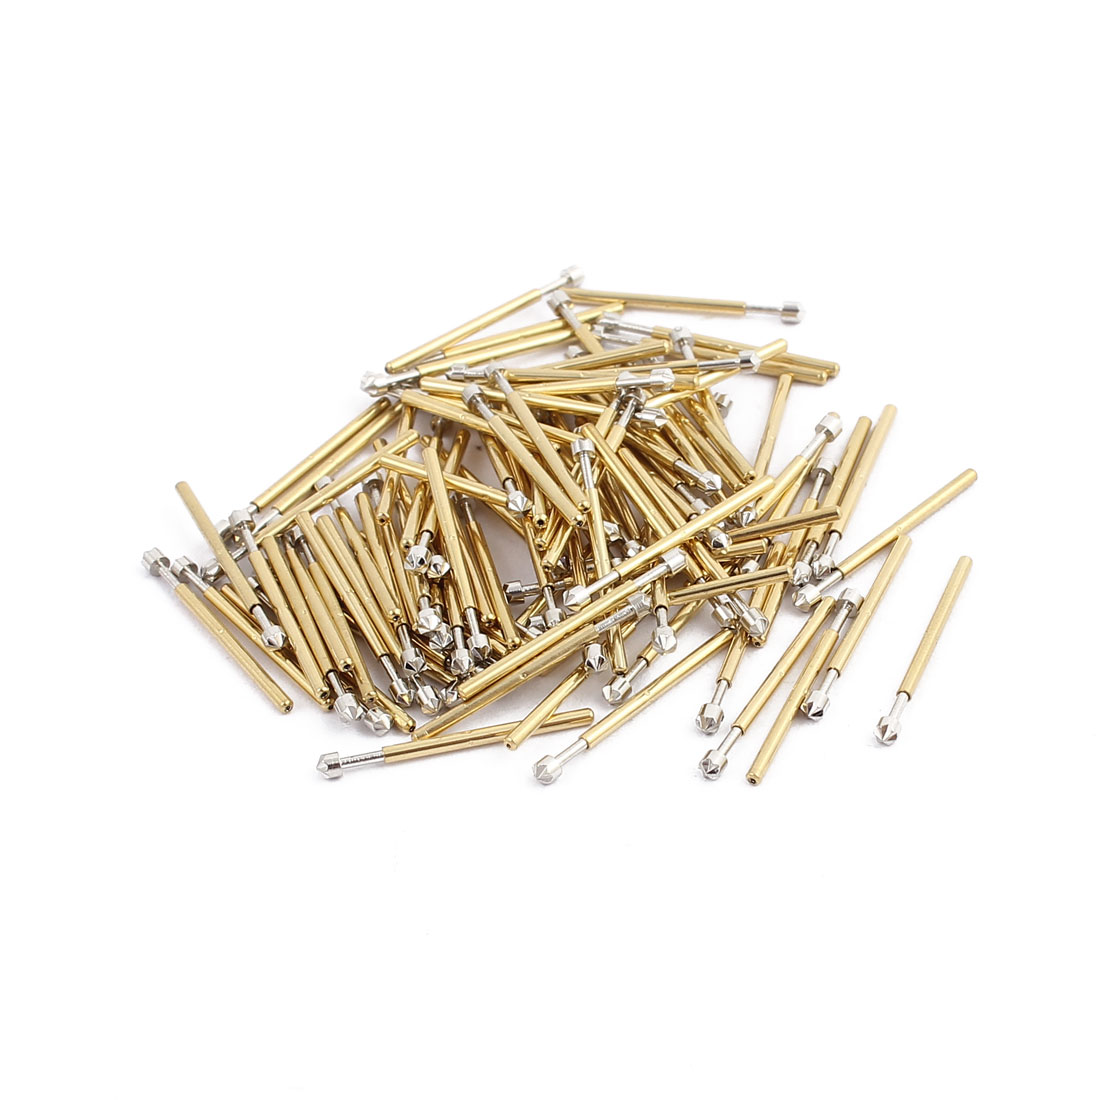 100pcs P75-LM3 1.0mm Dia 16.8mm Length Metal Spring Pressure Test Probe Needle